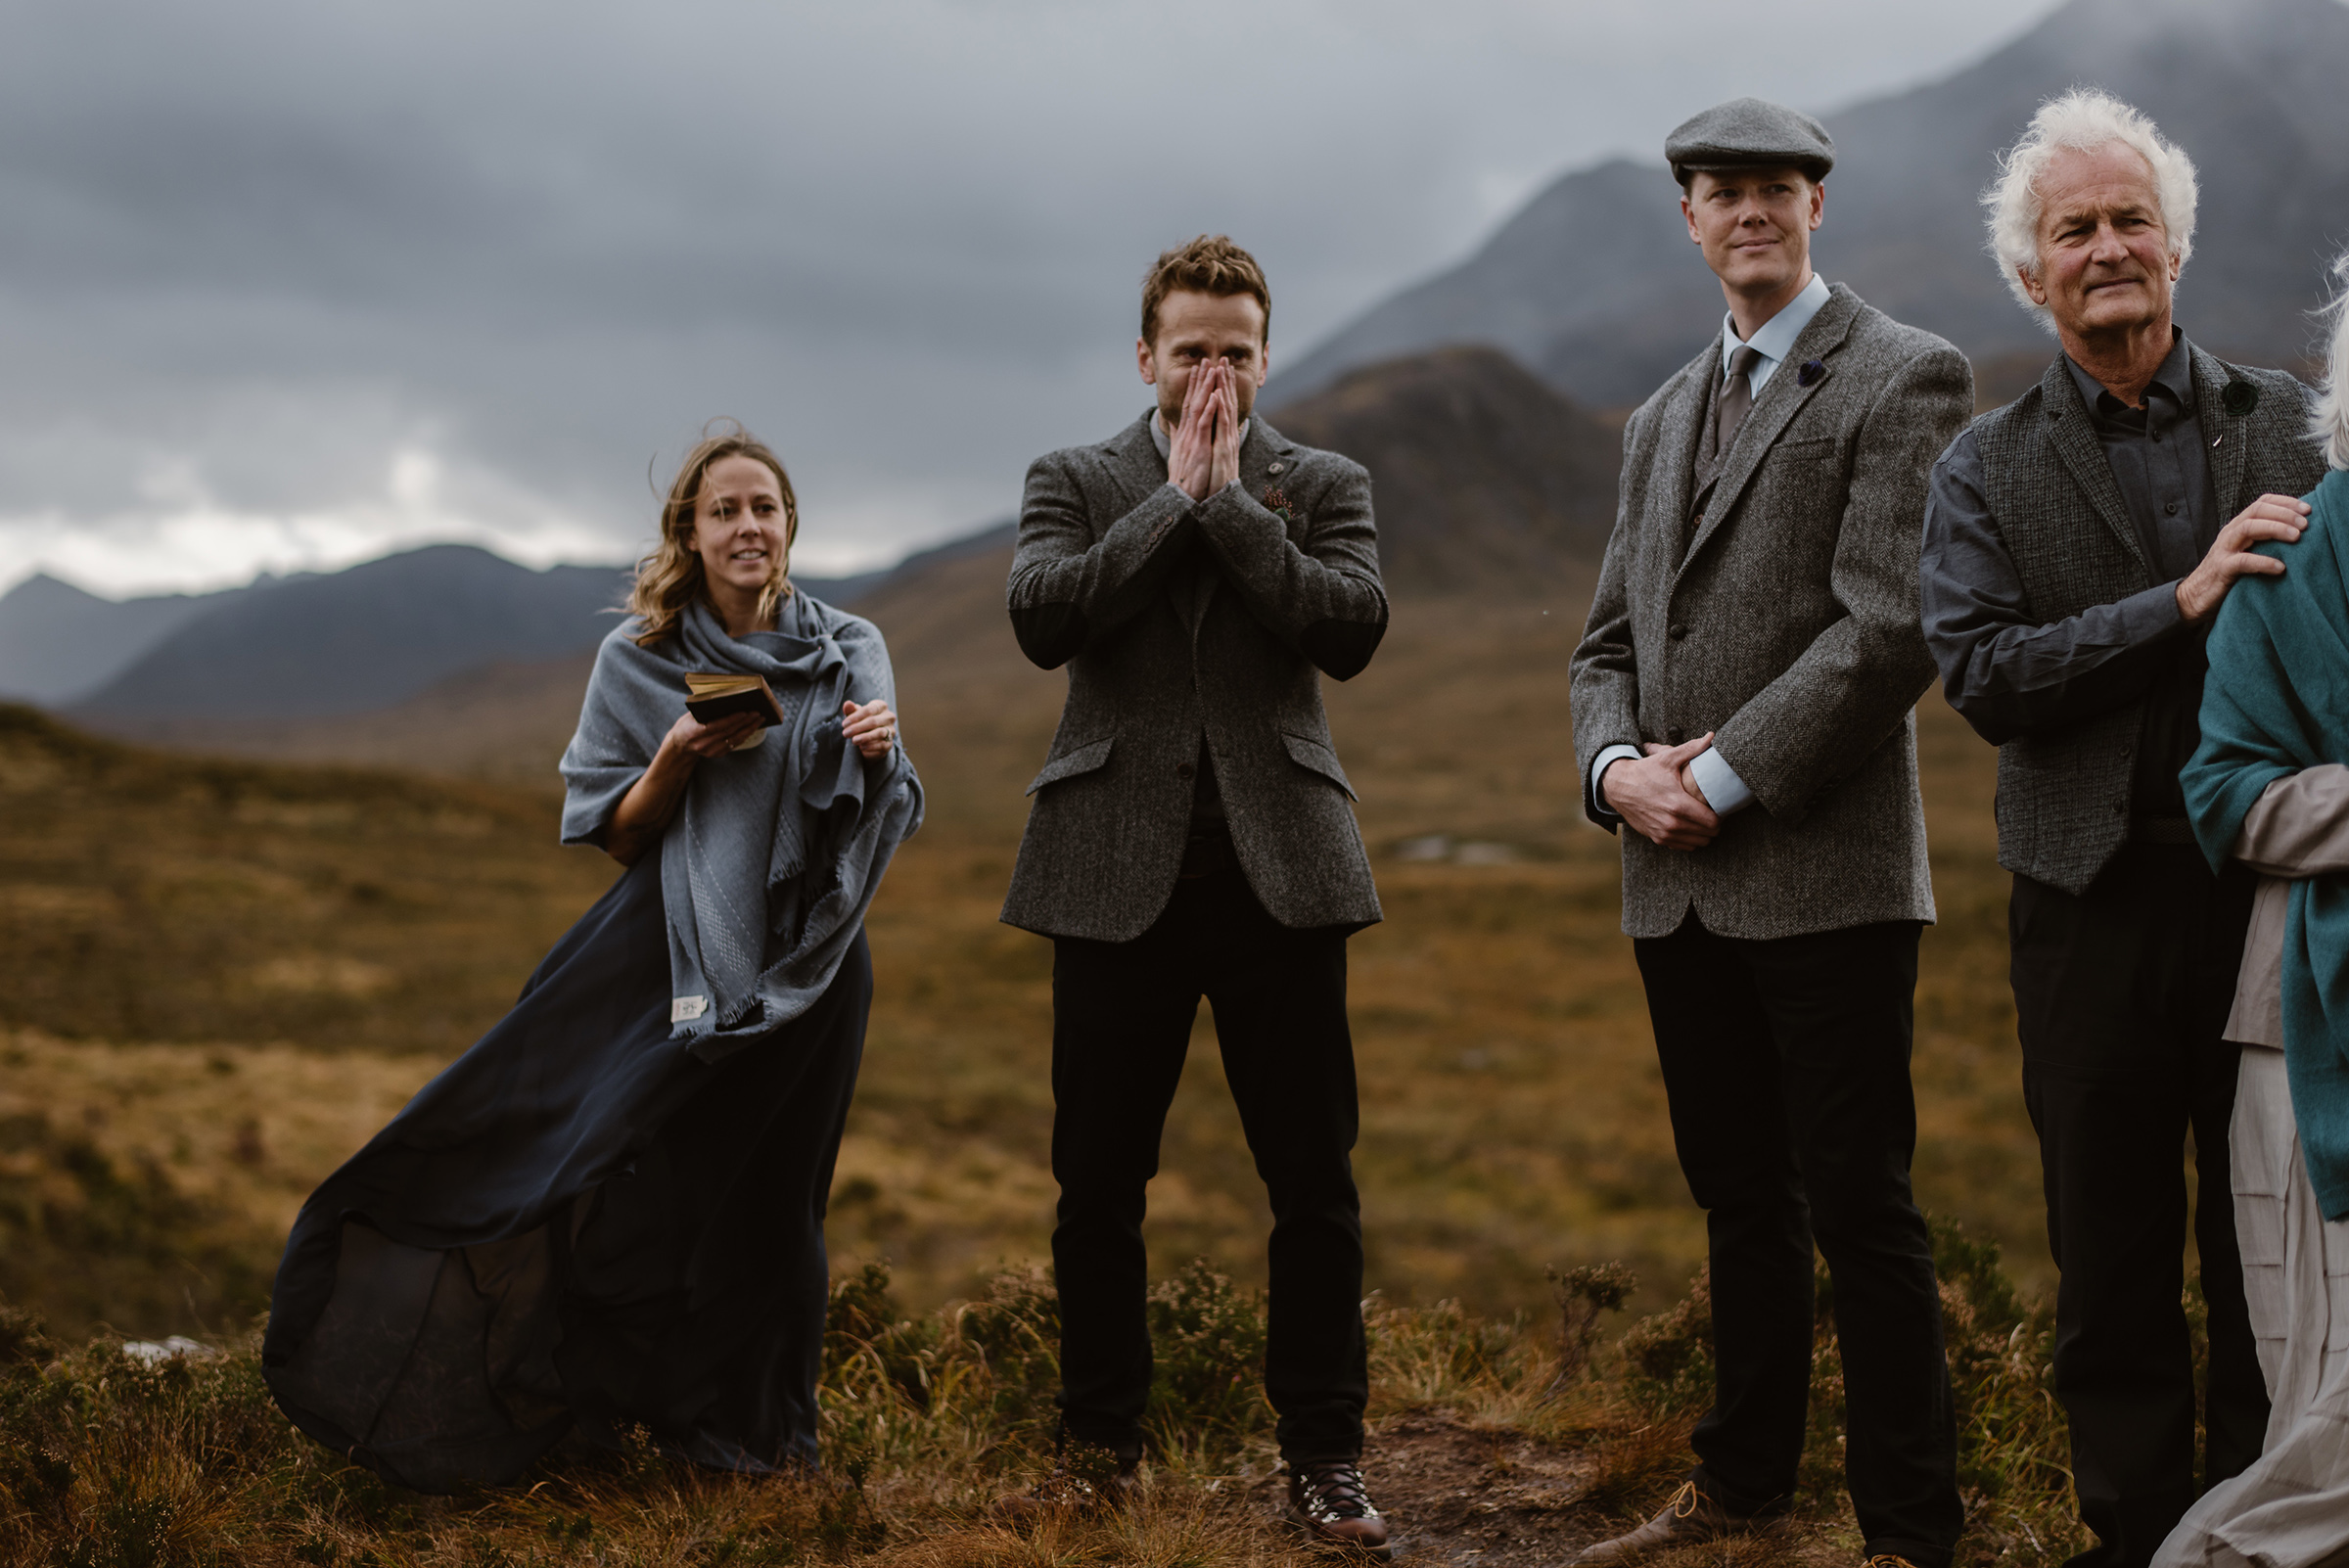 Elopement party in the mountains - photo by Virginia & Evan